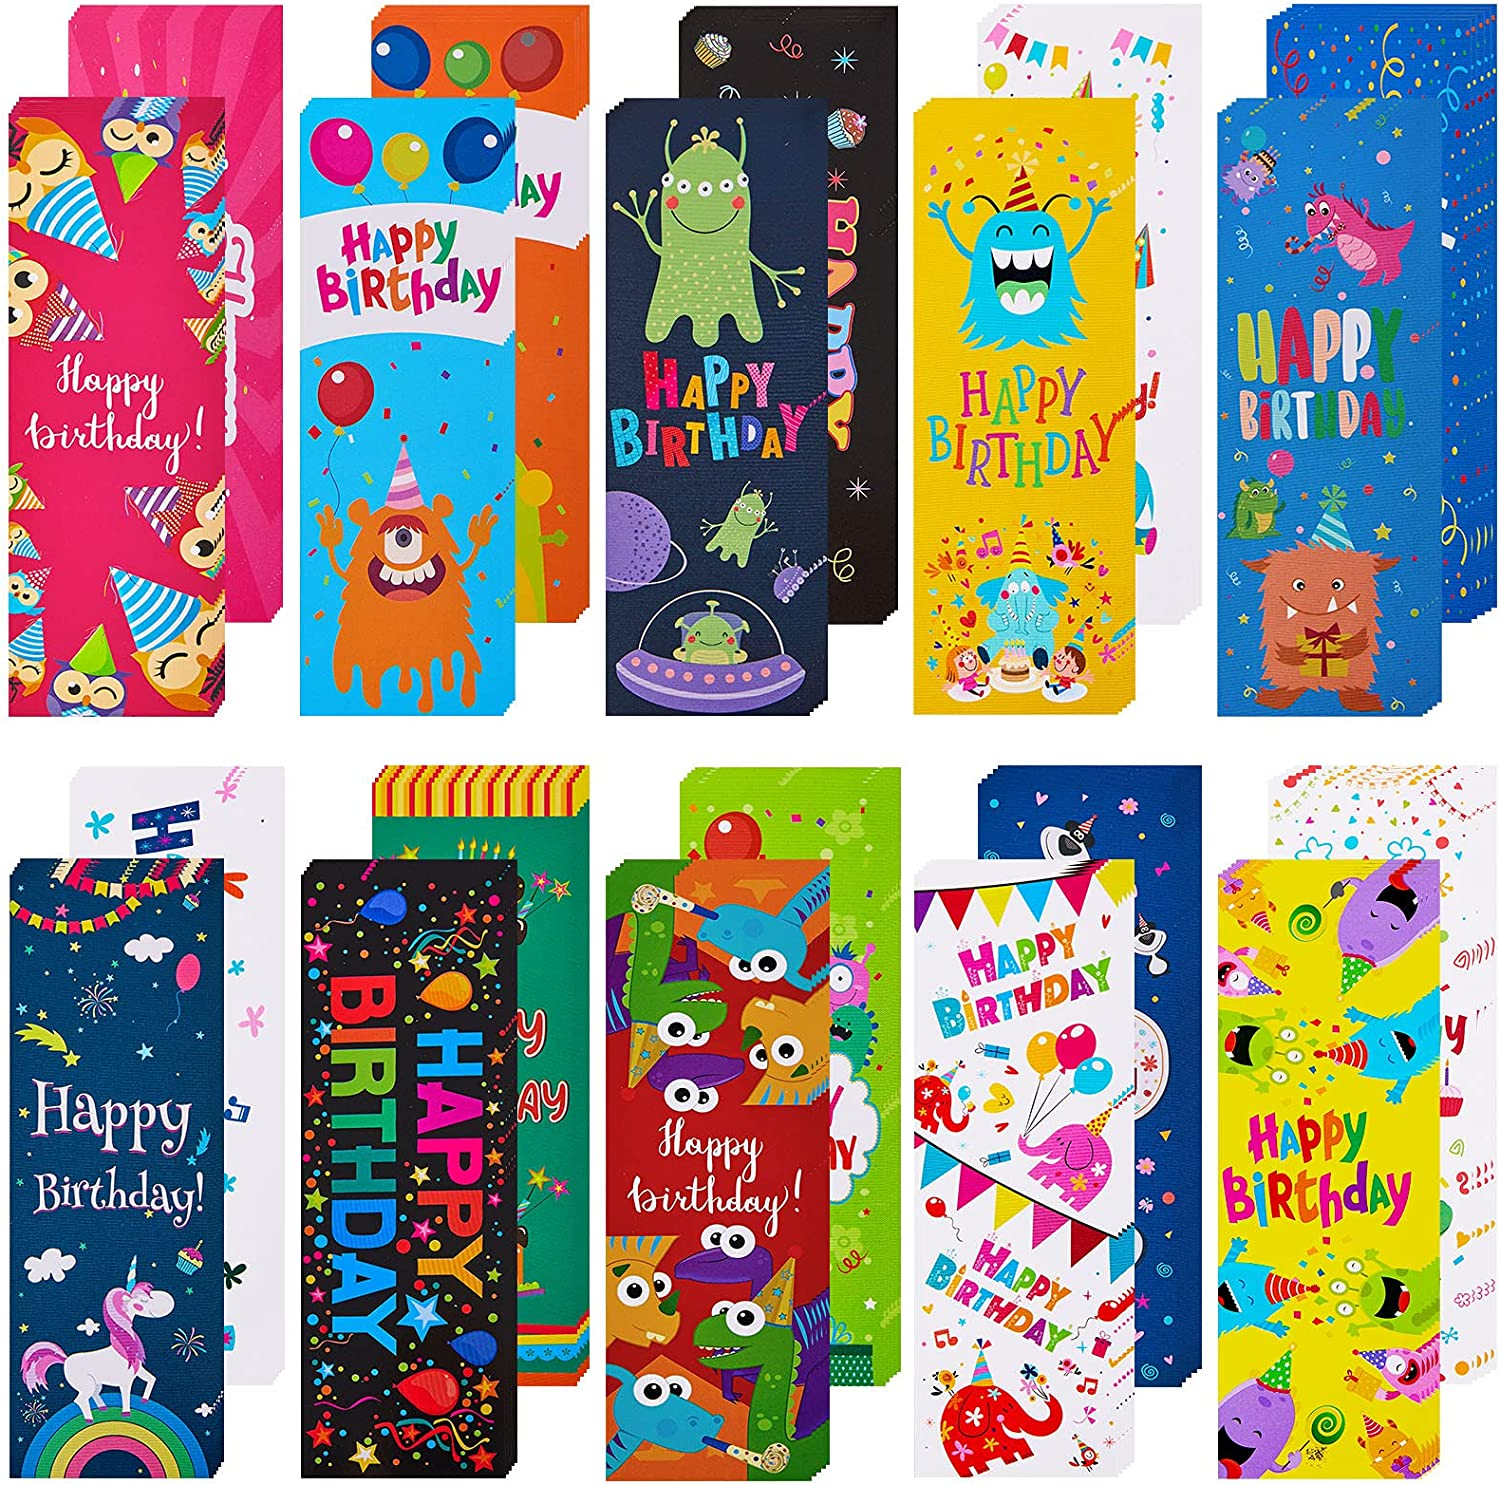 Happy Birthday Bookmarks Laminated Colors and Imaginative Patter Lowest price challenge Finally resale start